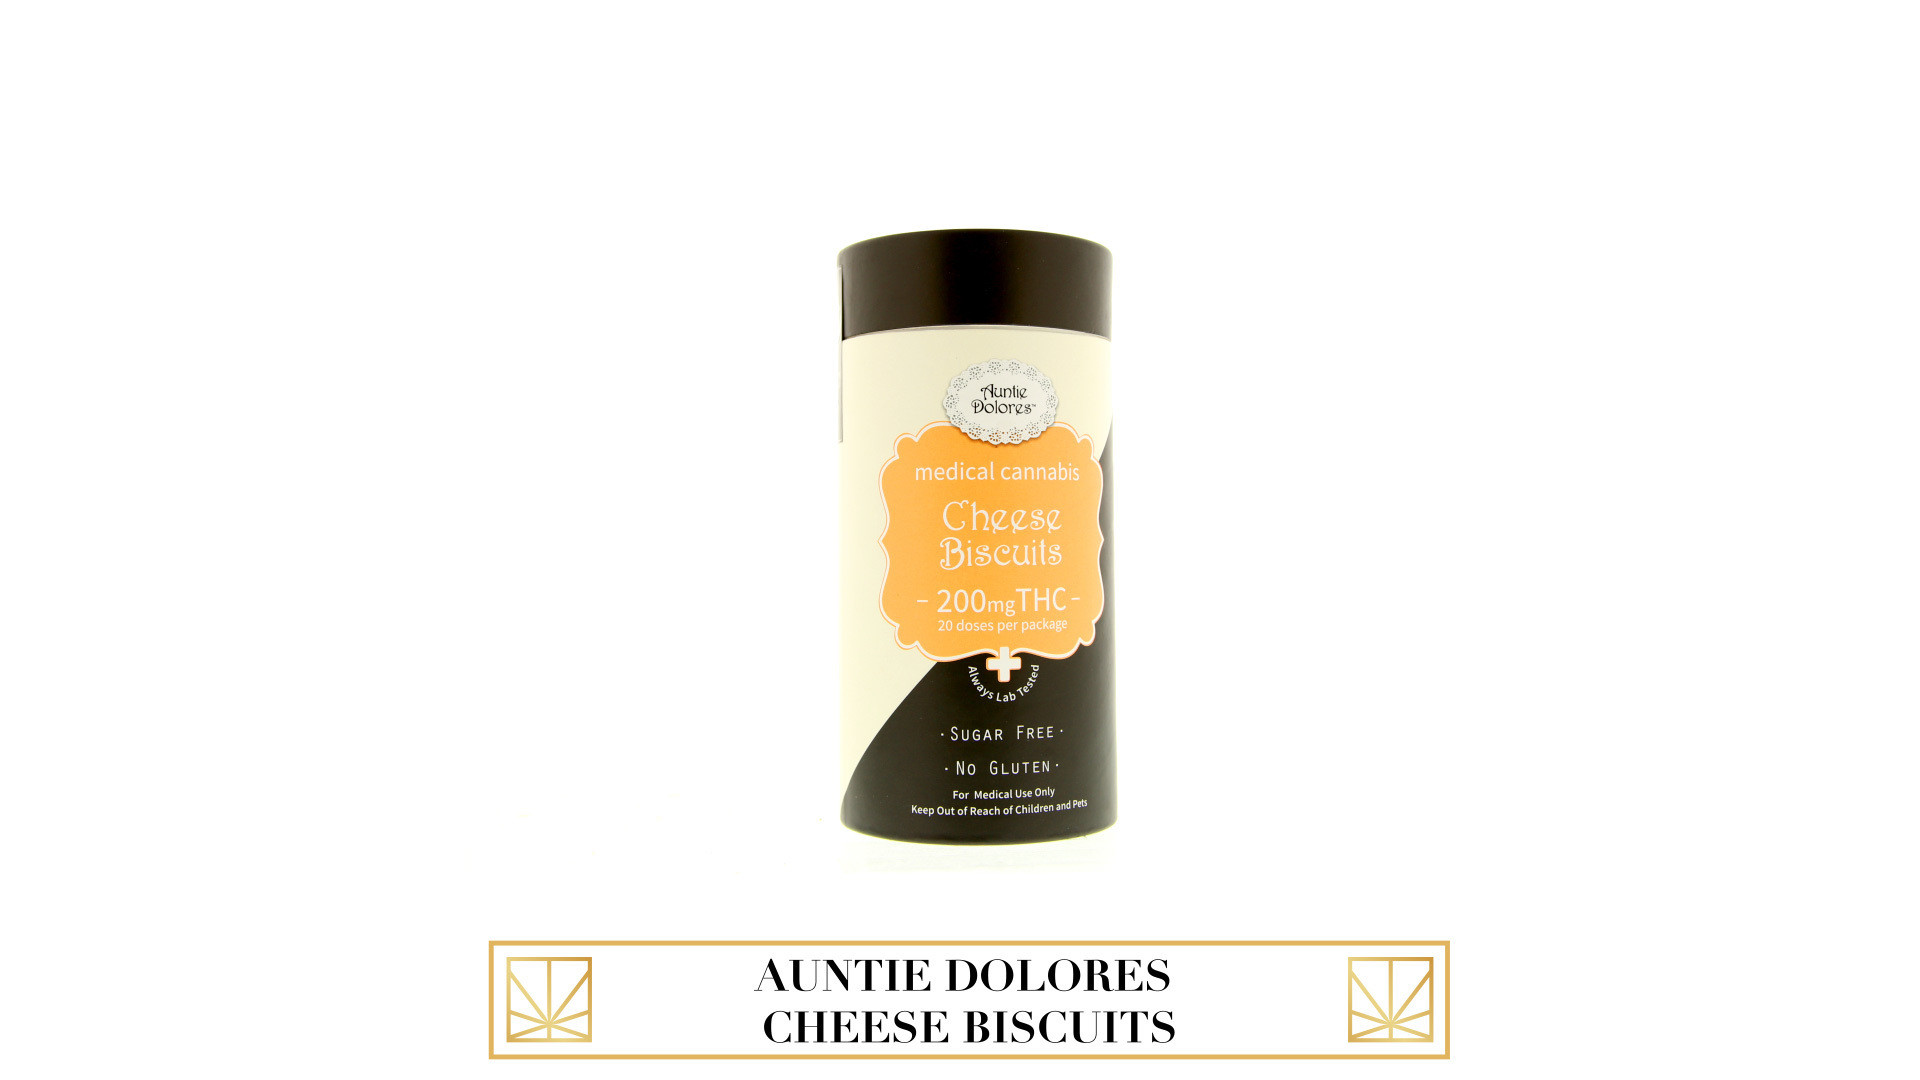 Auntie Dolores Cheese Biscuits